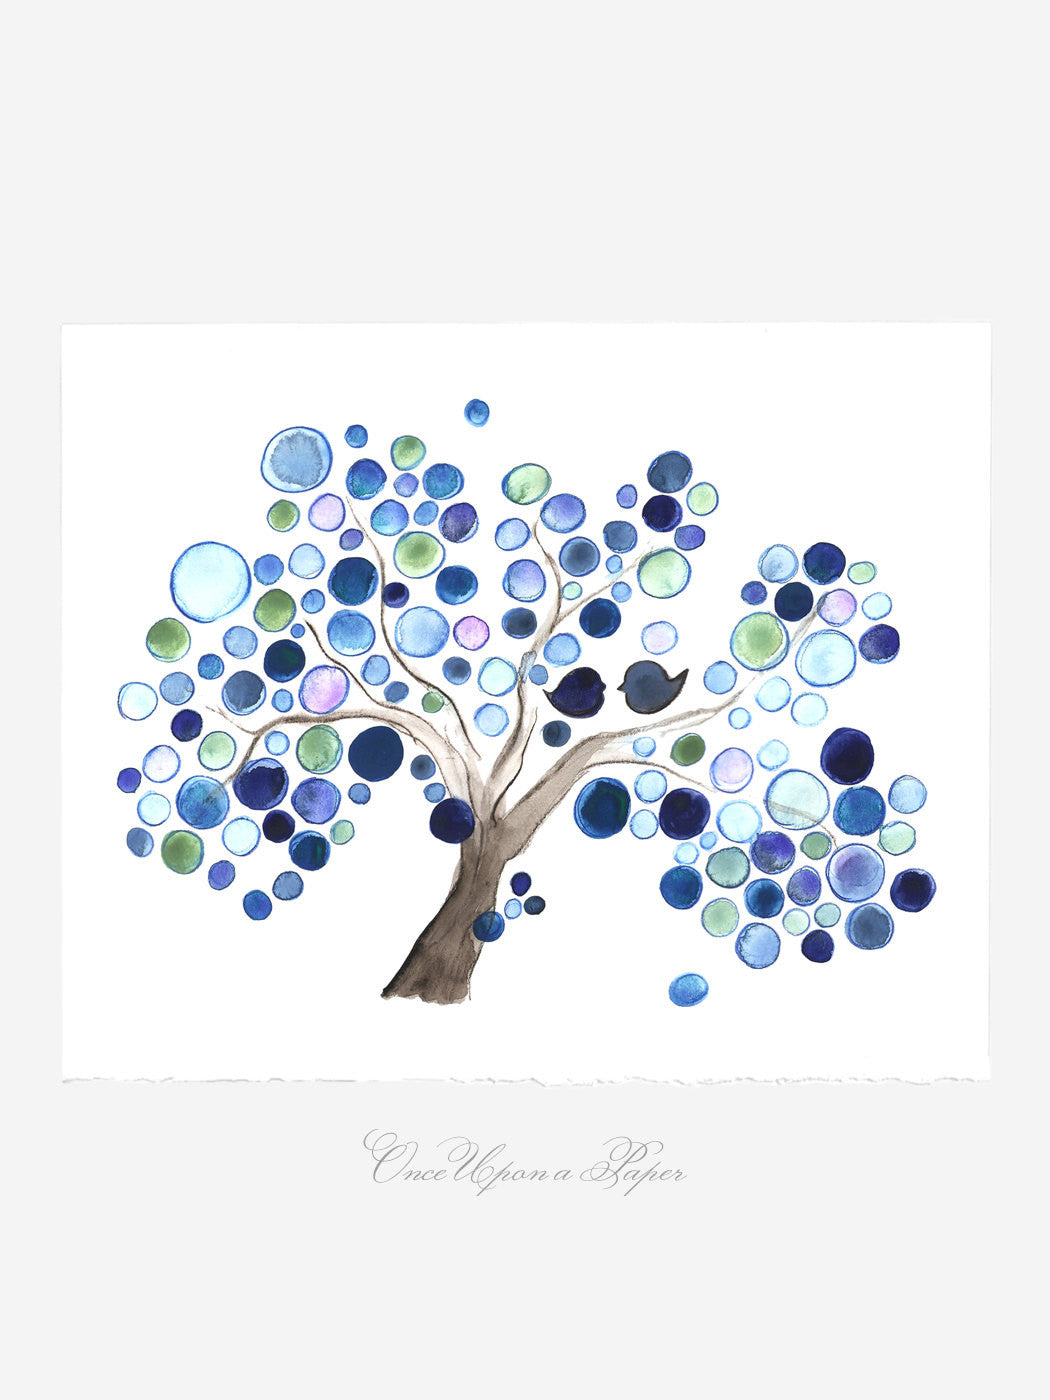 Annyversary Gift - Rain Tree - Giclee Art Print Reproduction of Watercolor Painting -Trees of Life Collection